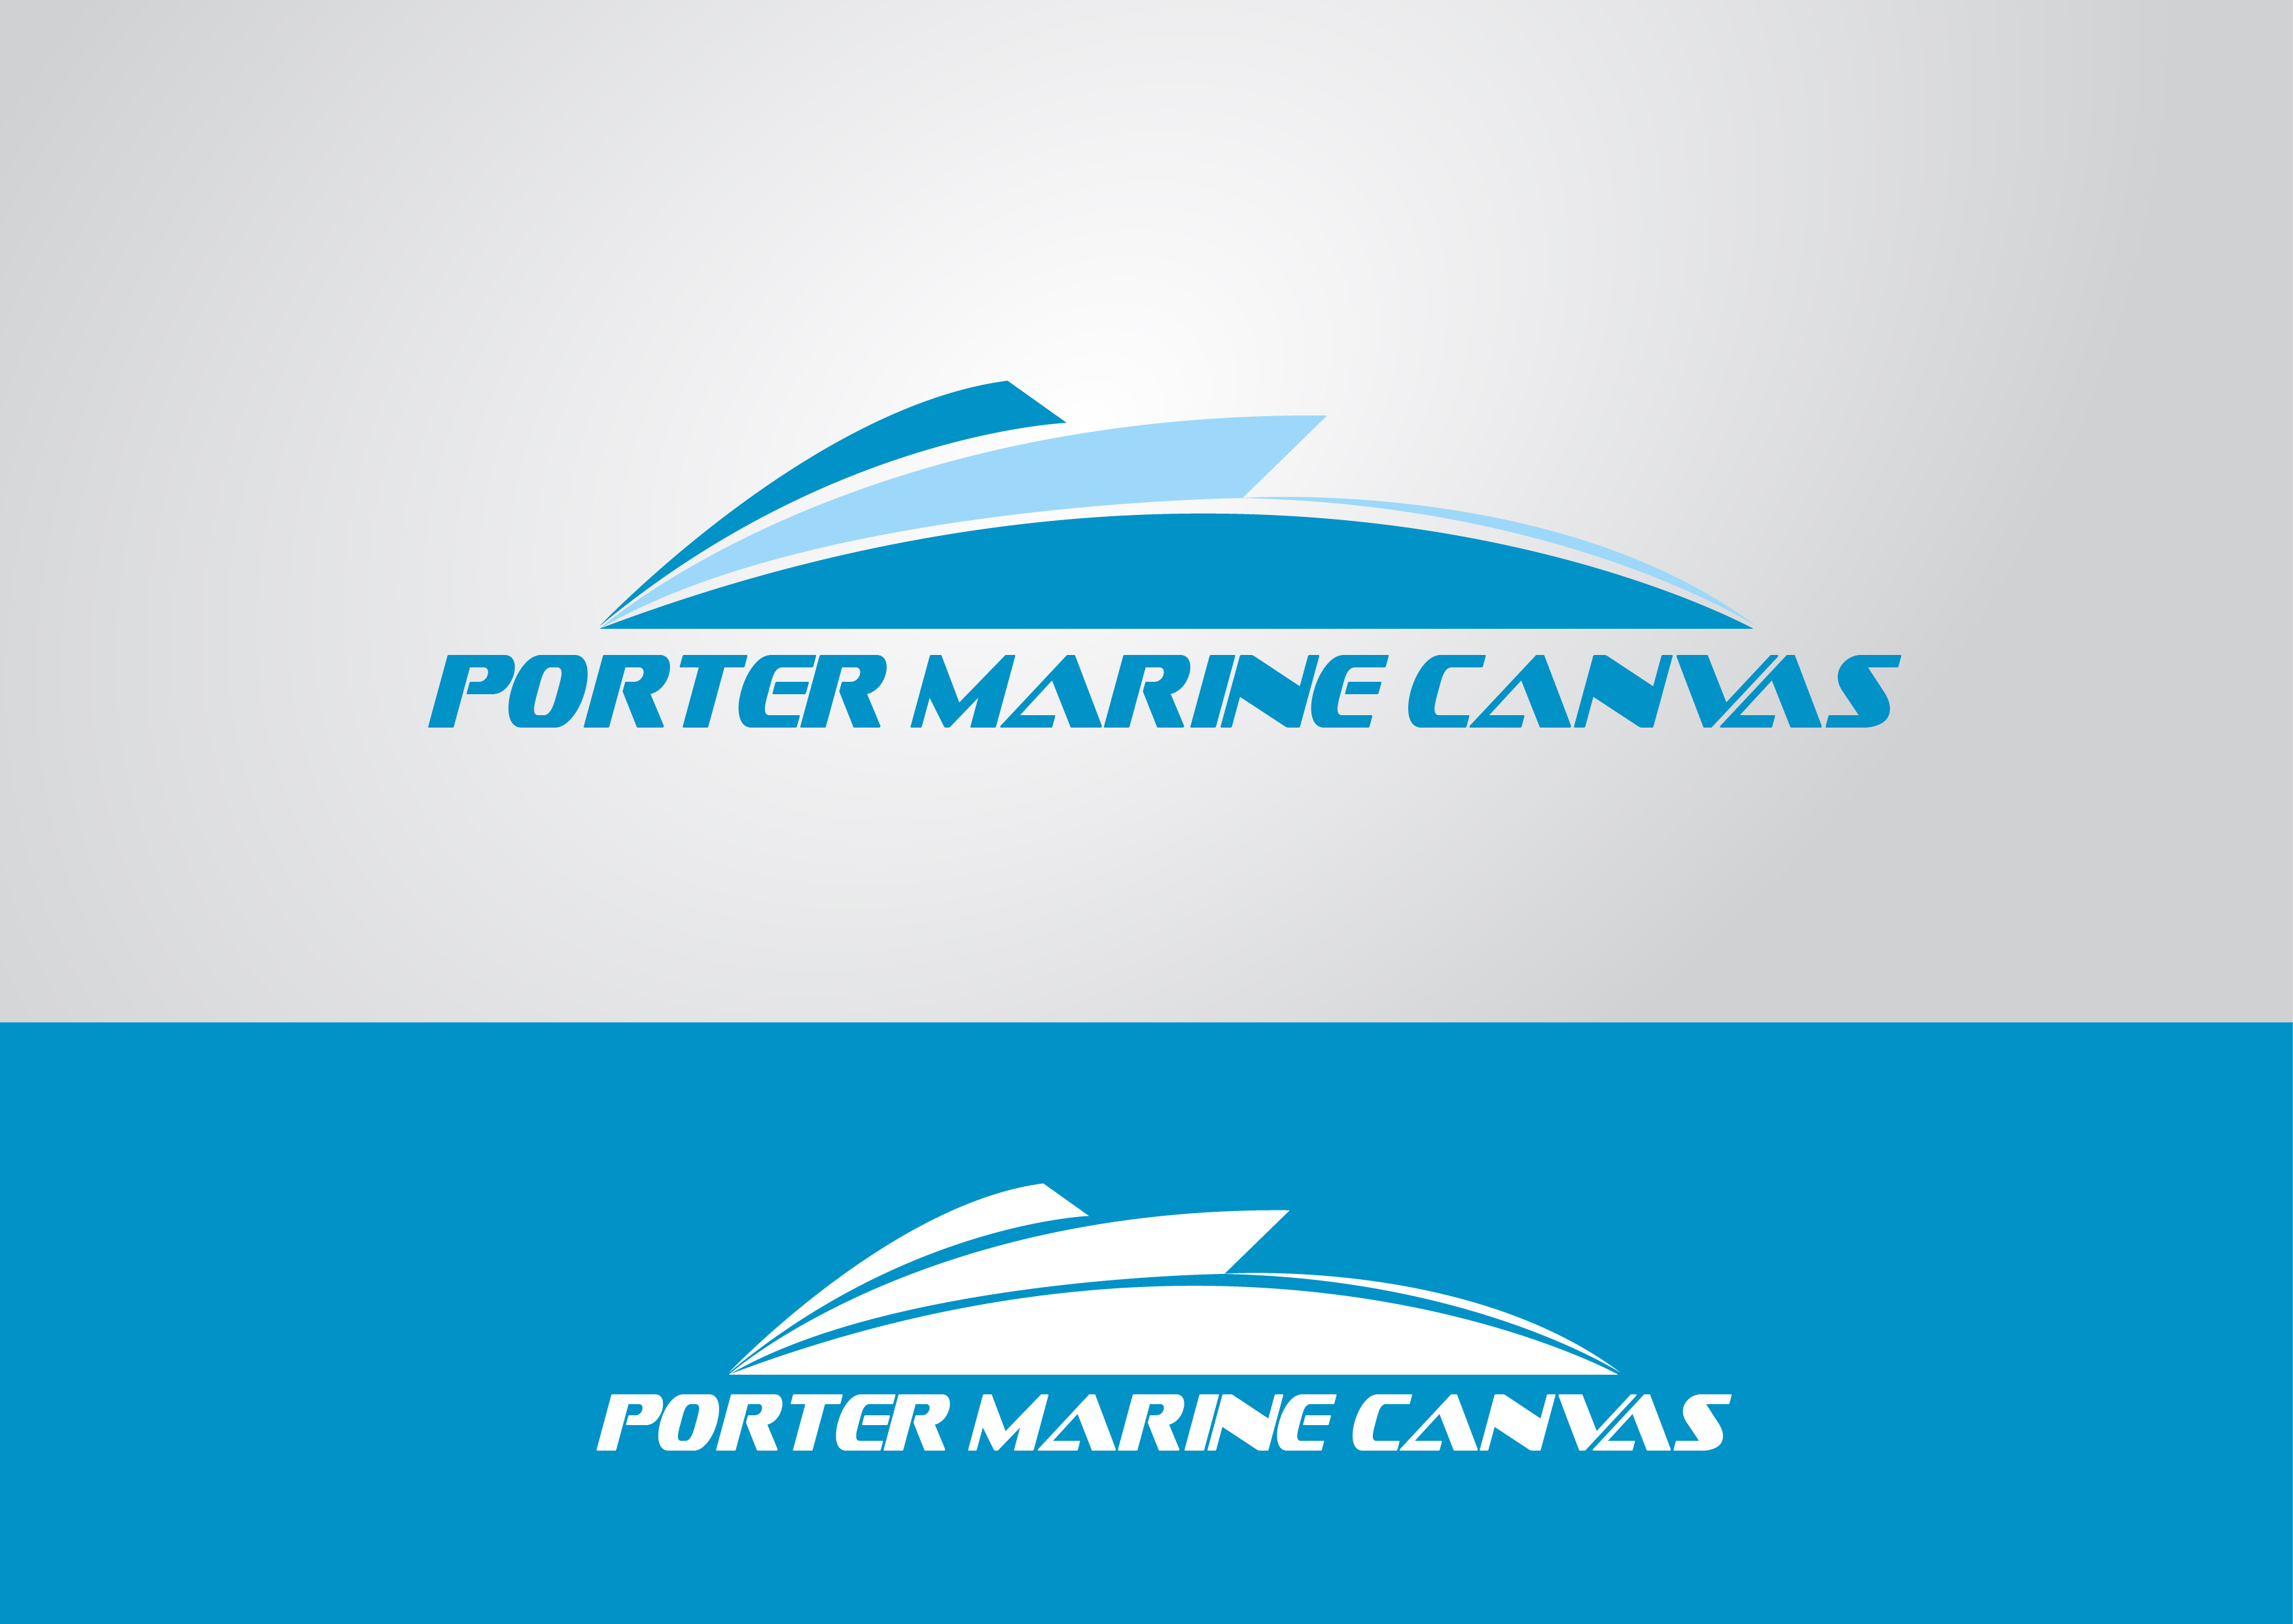 Logo Design by 3draw - Entry No. 110 in the Logo Design Contest Imaginative Logo Design for Porter Marine Canvas.